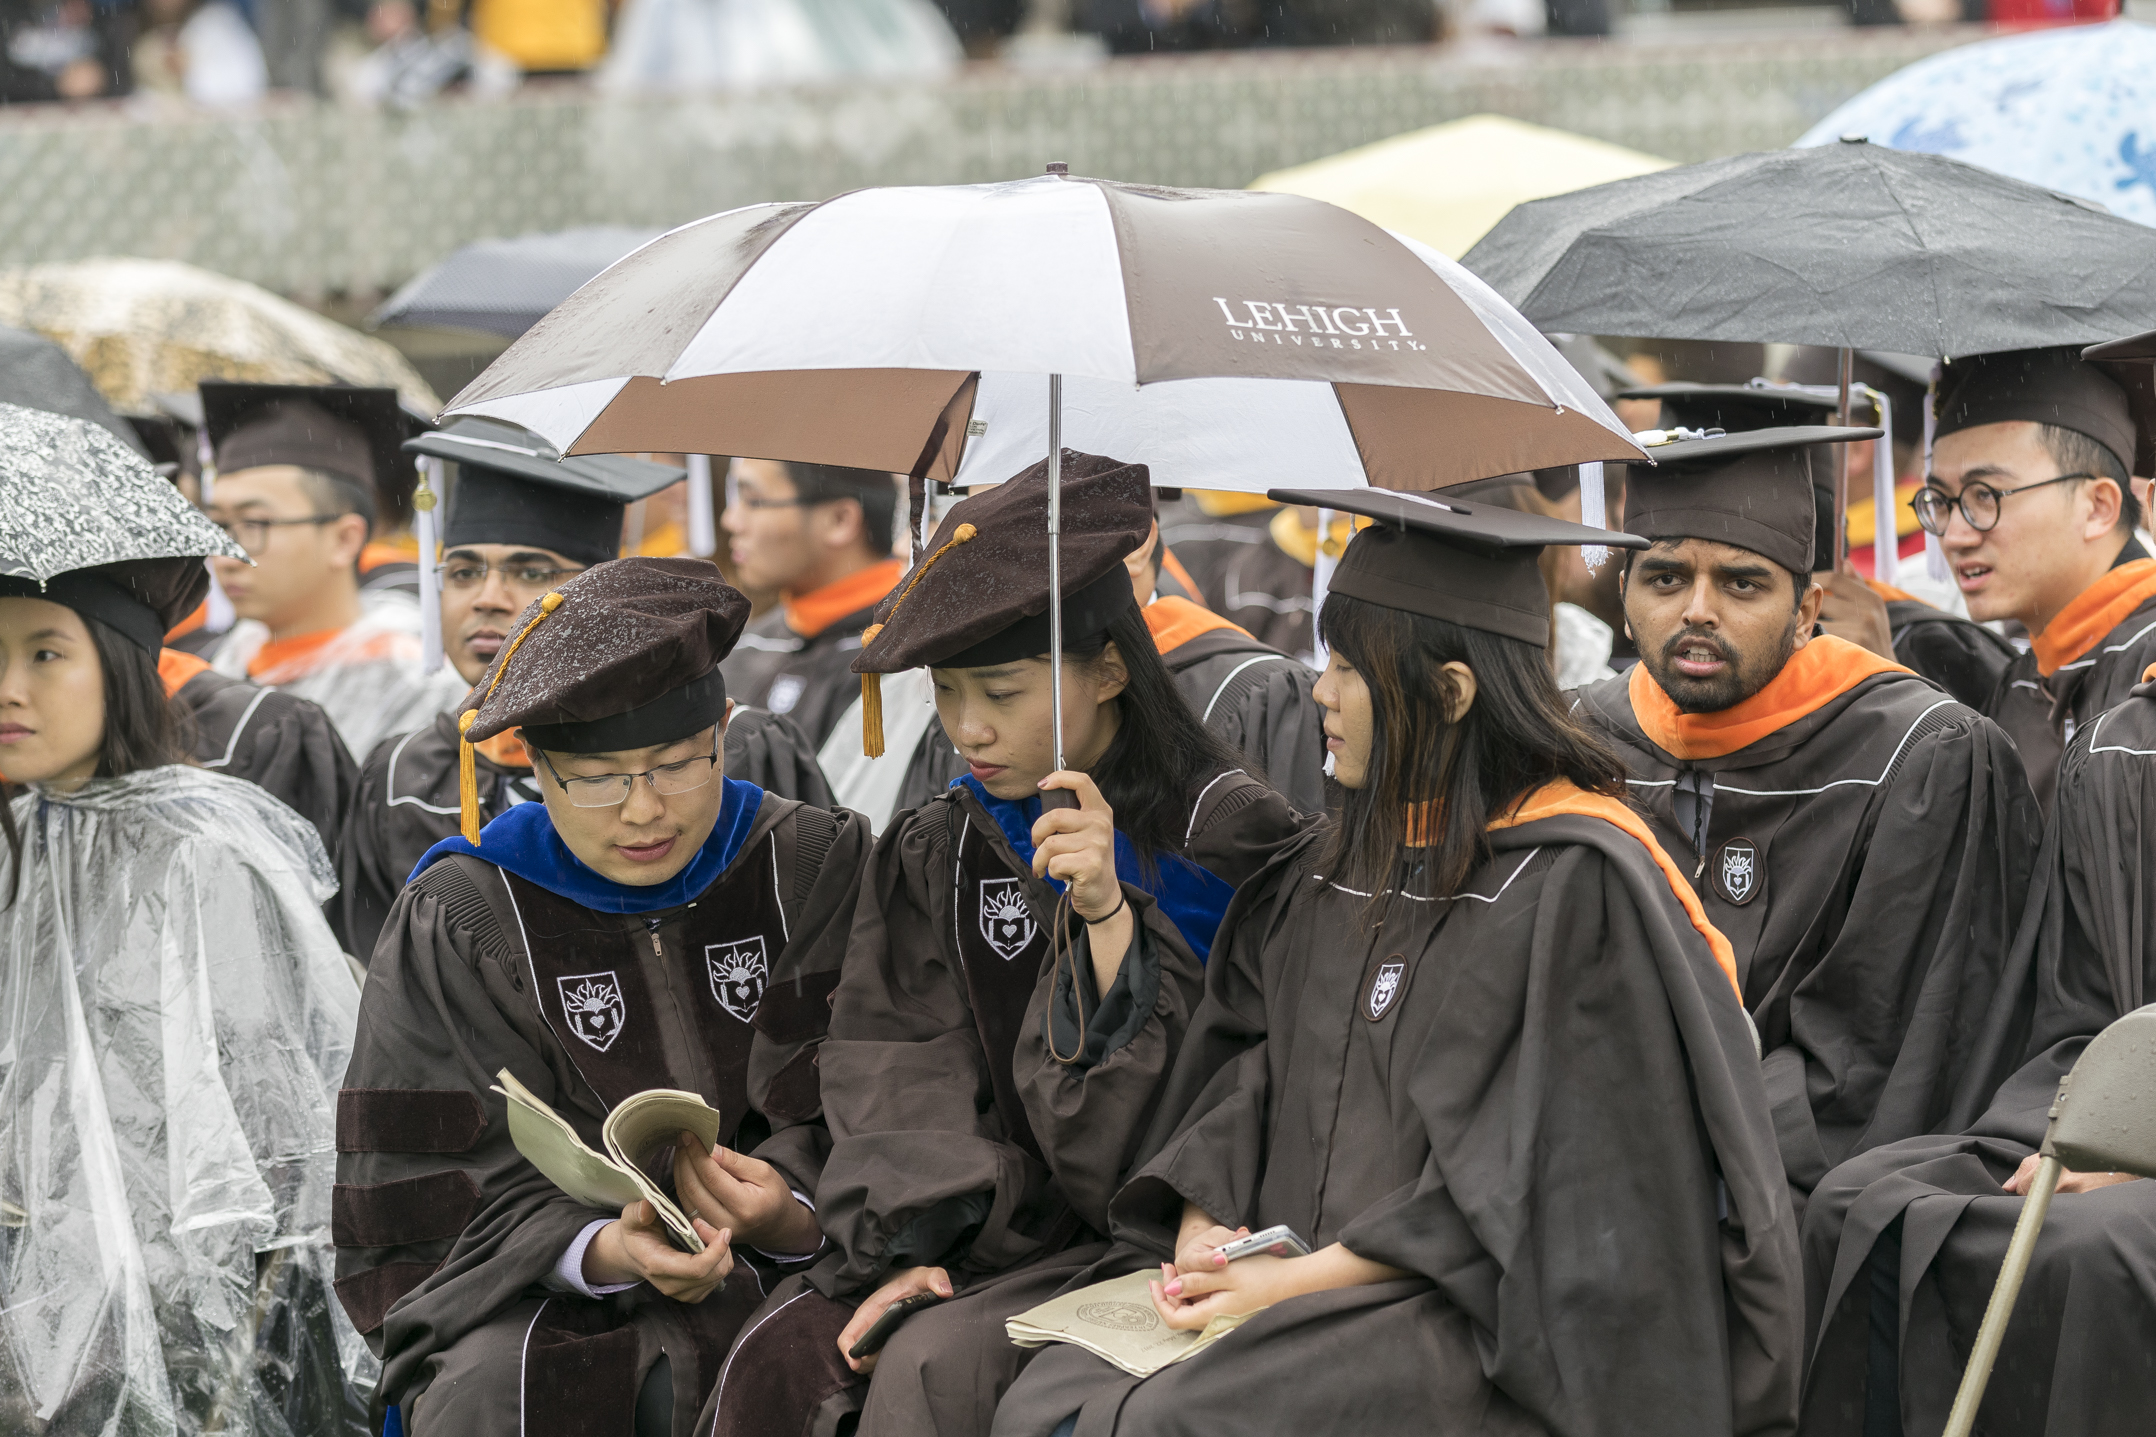 Students use an umbrella to block the rain while flipping through the program Monday, May 22, 2017, in Goodman Stadium. Most students and visitors huddled under umbrellas or ponchos for protection from the inclement weather. (Roshan Giyanani/B&W Staff)